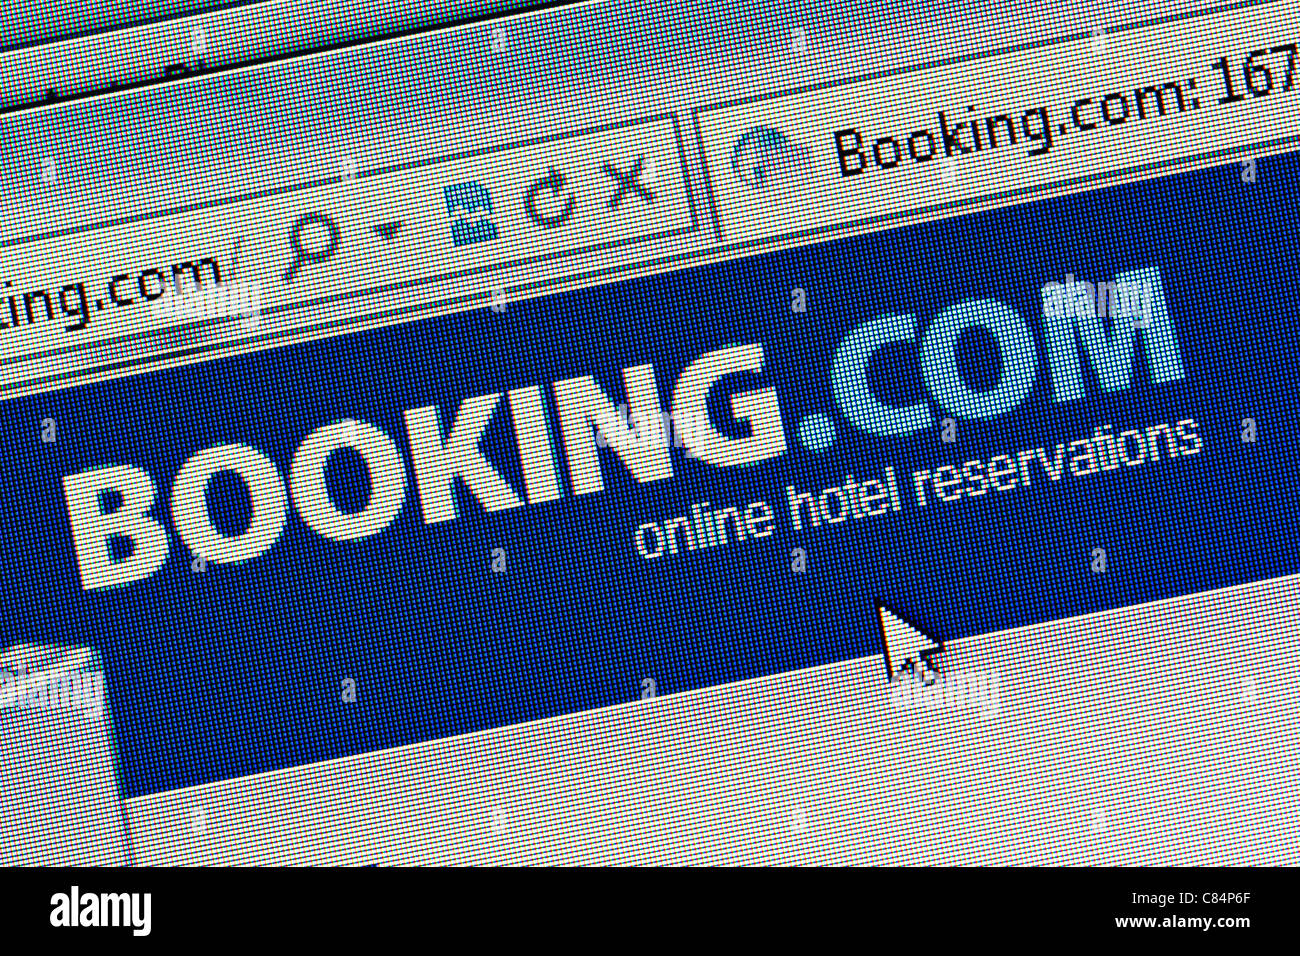 Booking.com logo et un nouveau site web close up Photo Stock